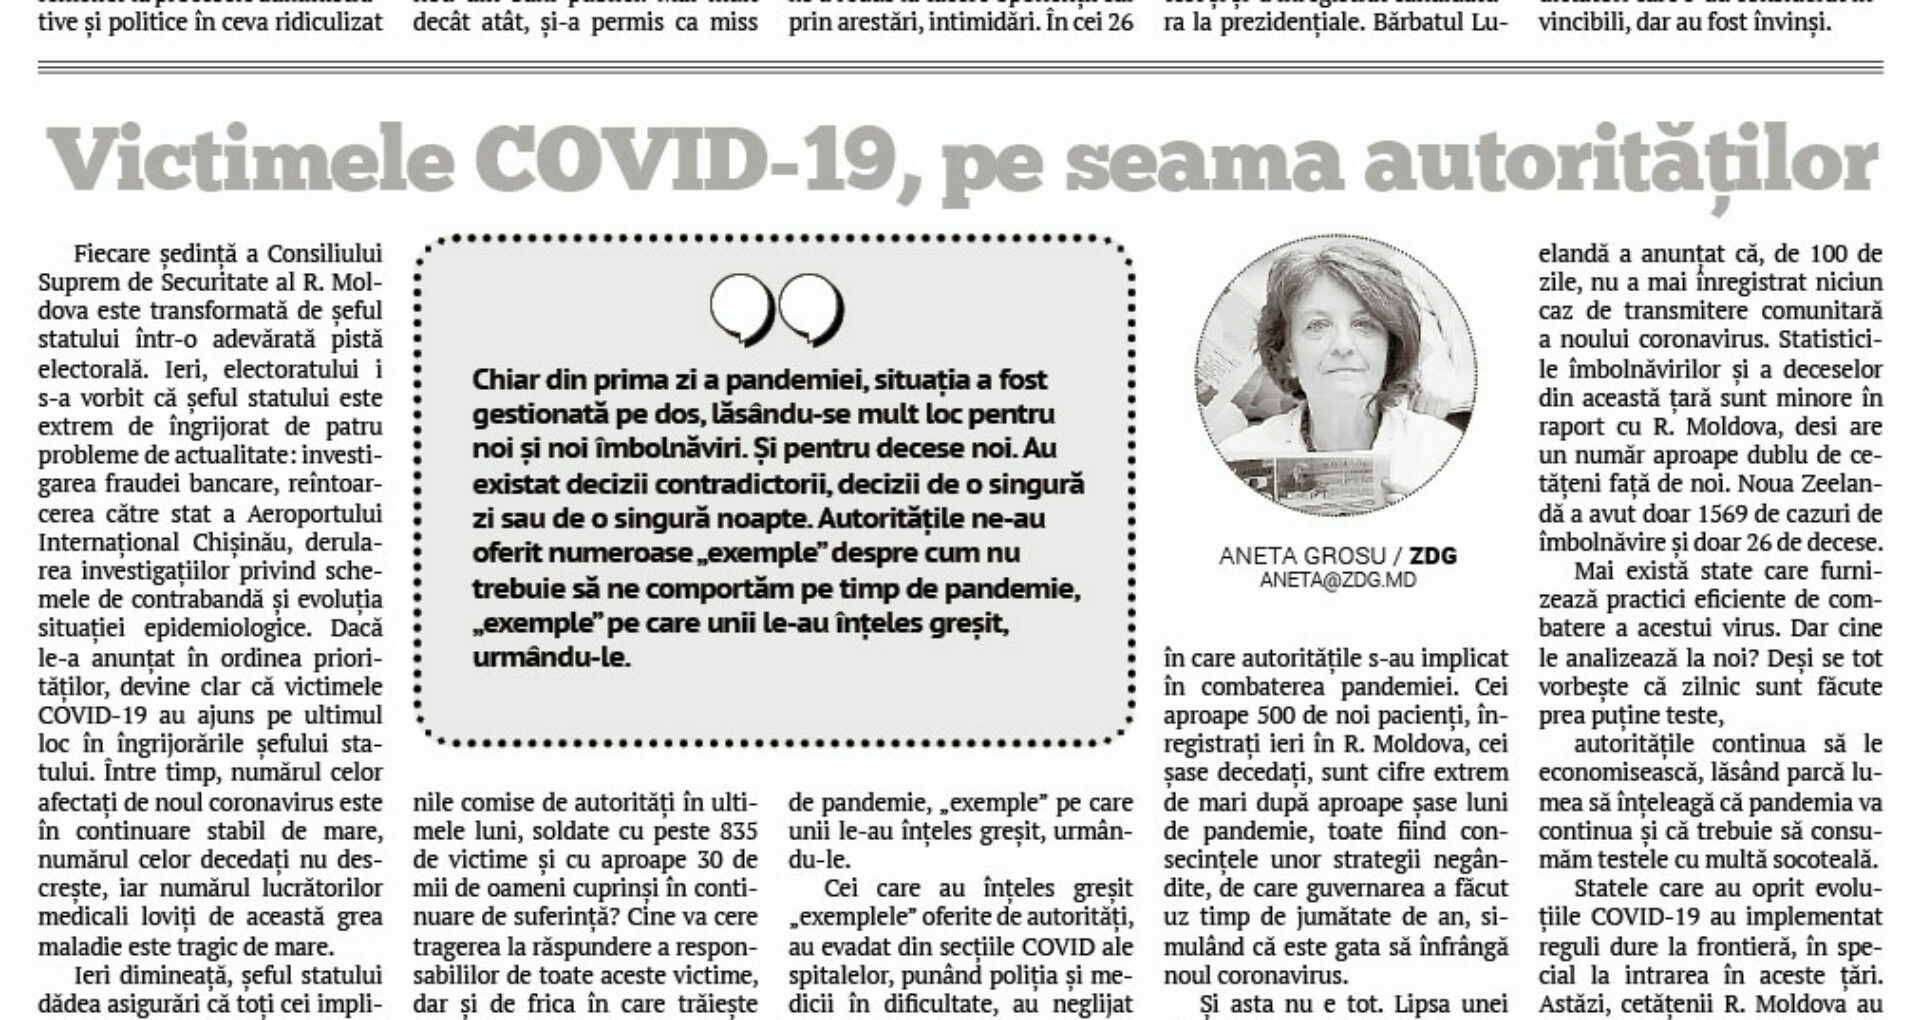 The Authorities Responsible for the Number of COVID-19 Victims